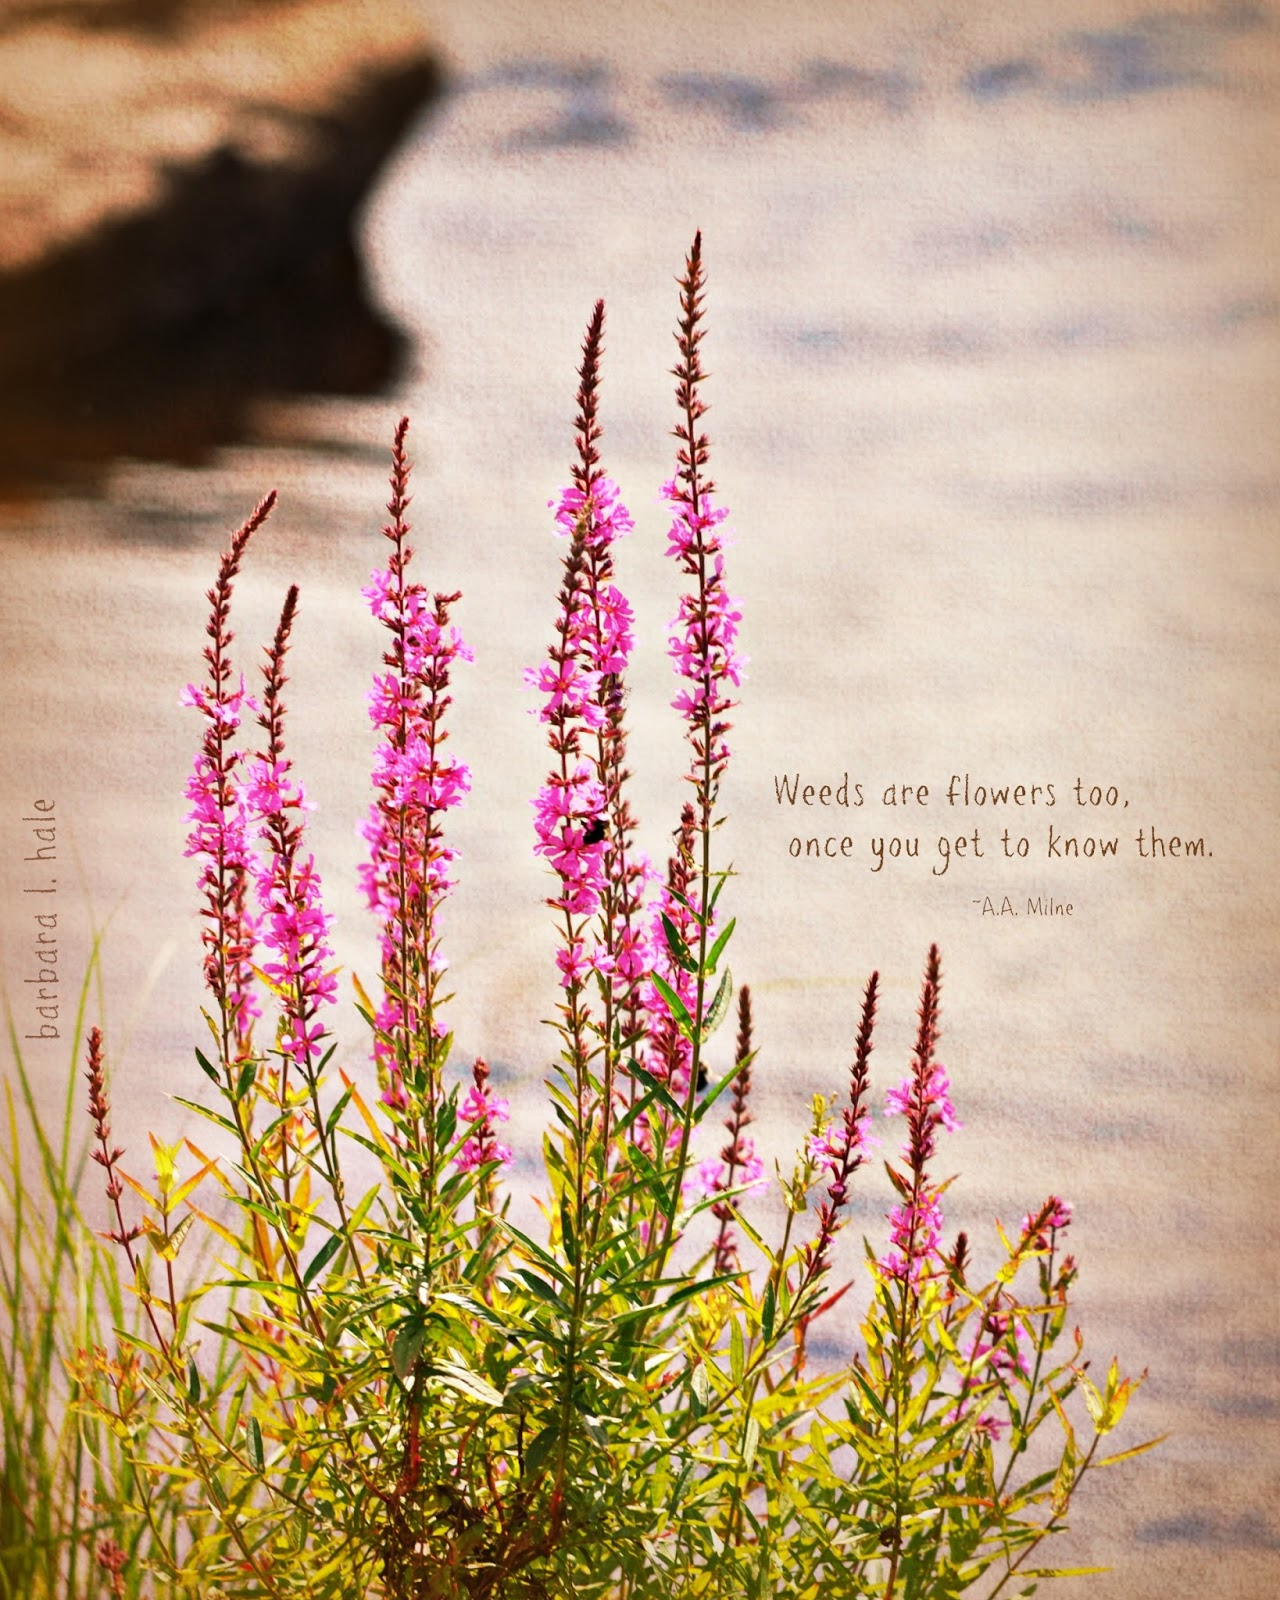 Commonplace Beauty Photography: Weeds are flowers too...